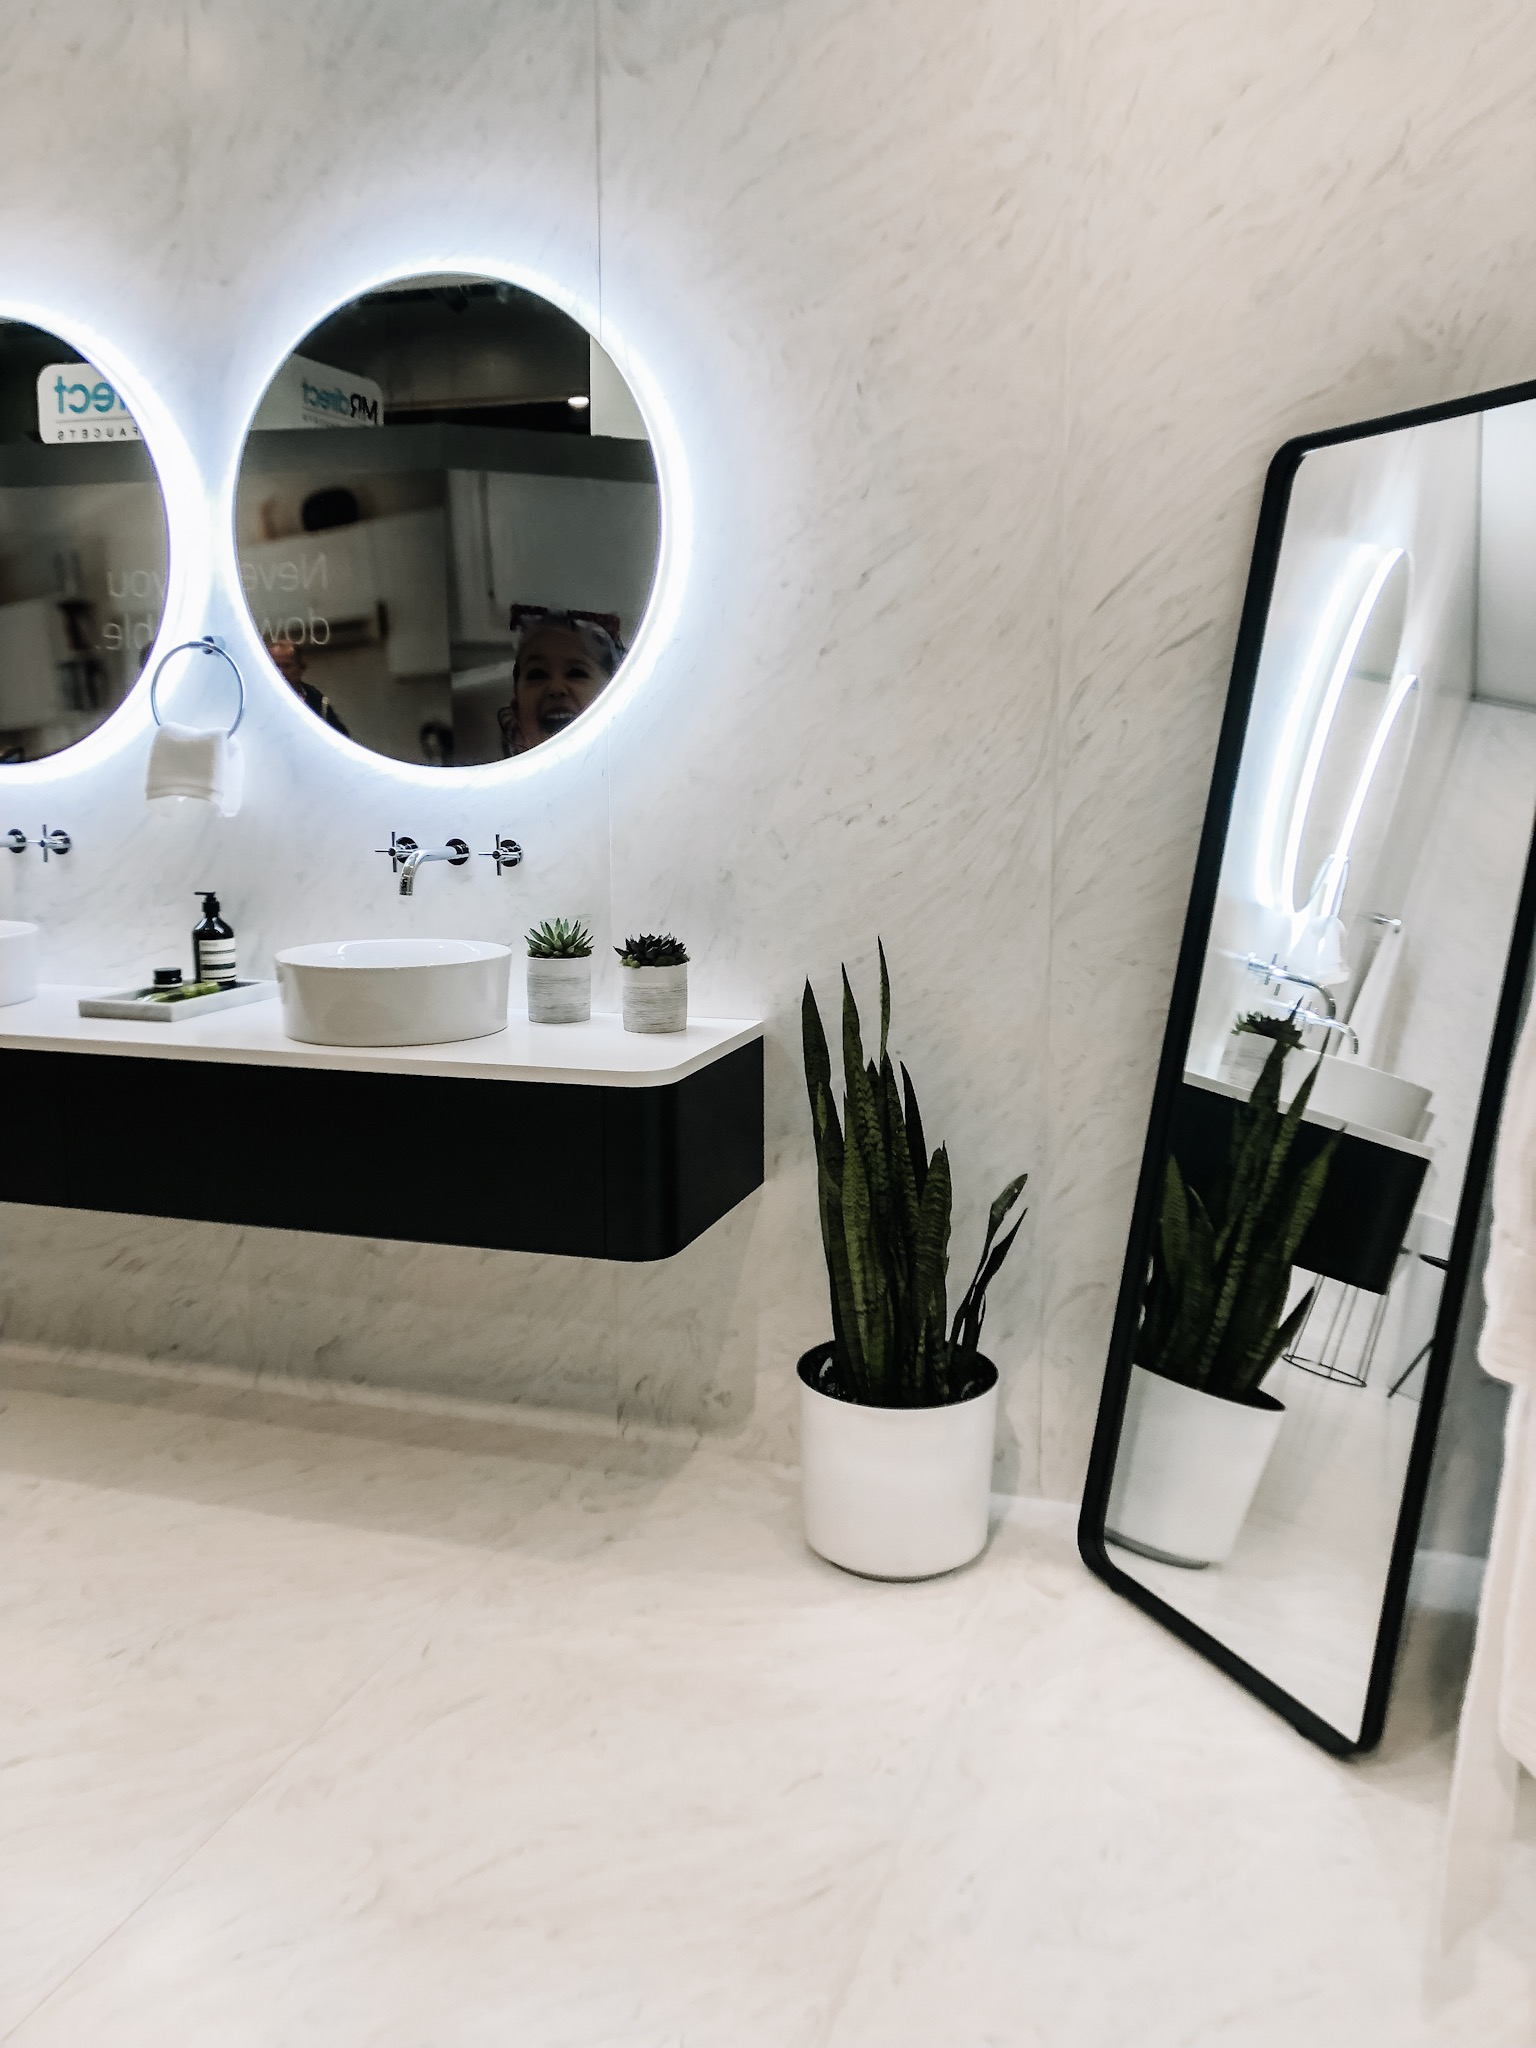 The Top 5 Kitchen and Bath Trends for 2019 and How To Get Them On a Budget - Lighted Mirrors